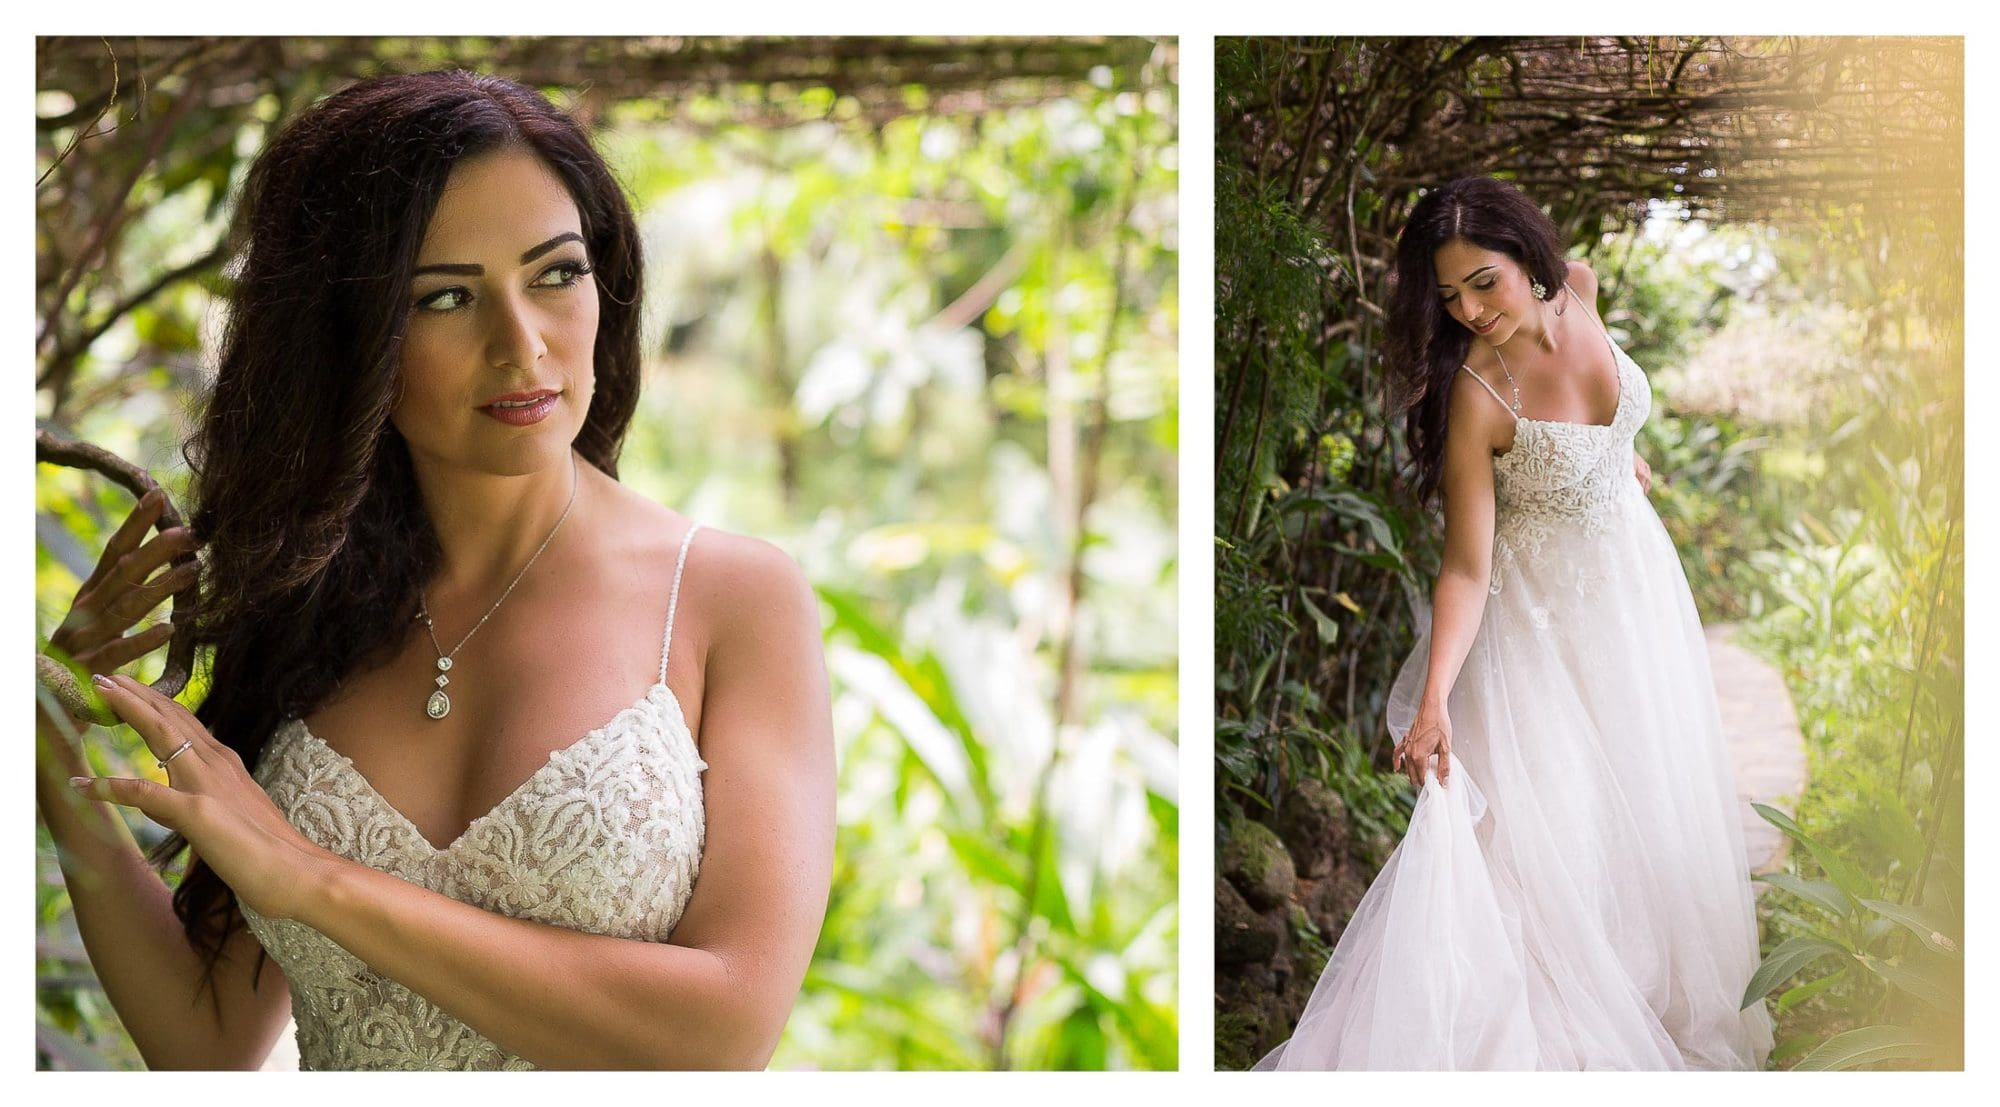 Bridal Portraits at La Paloma Lodge